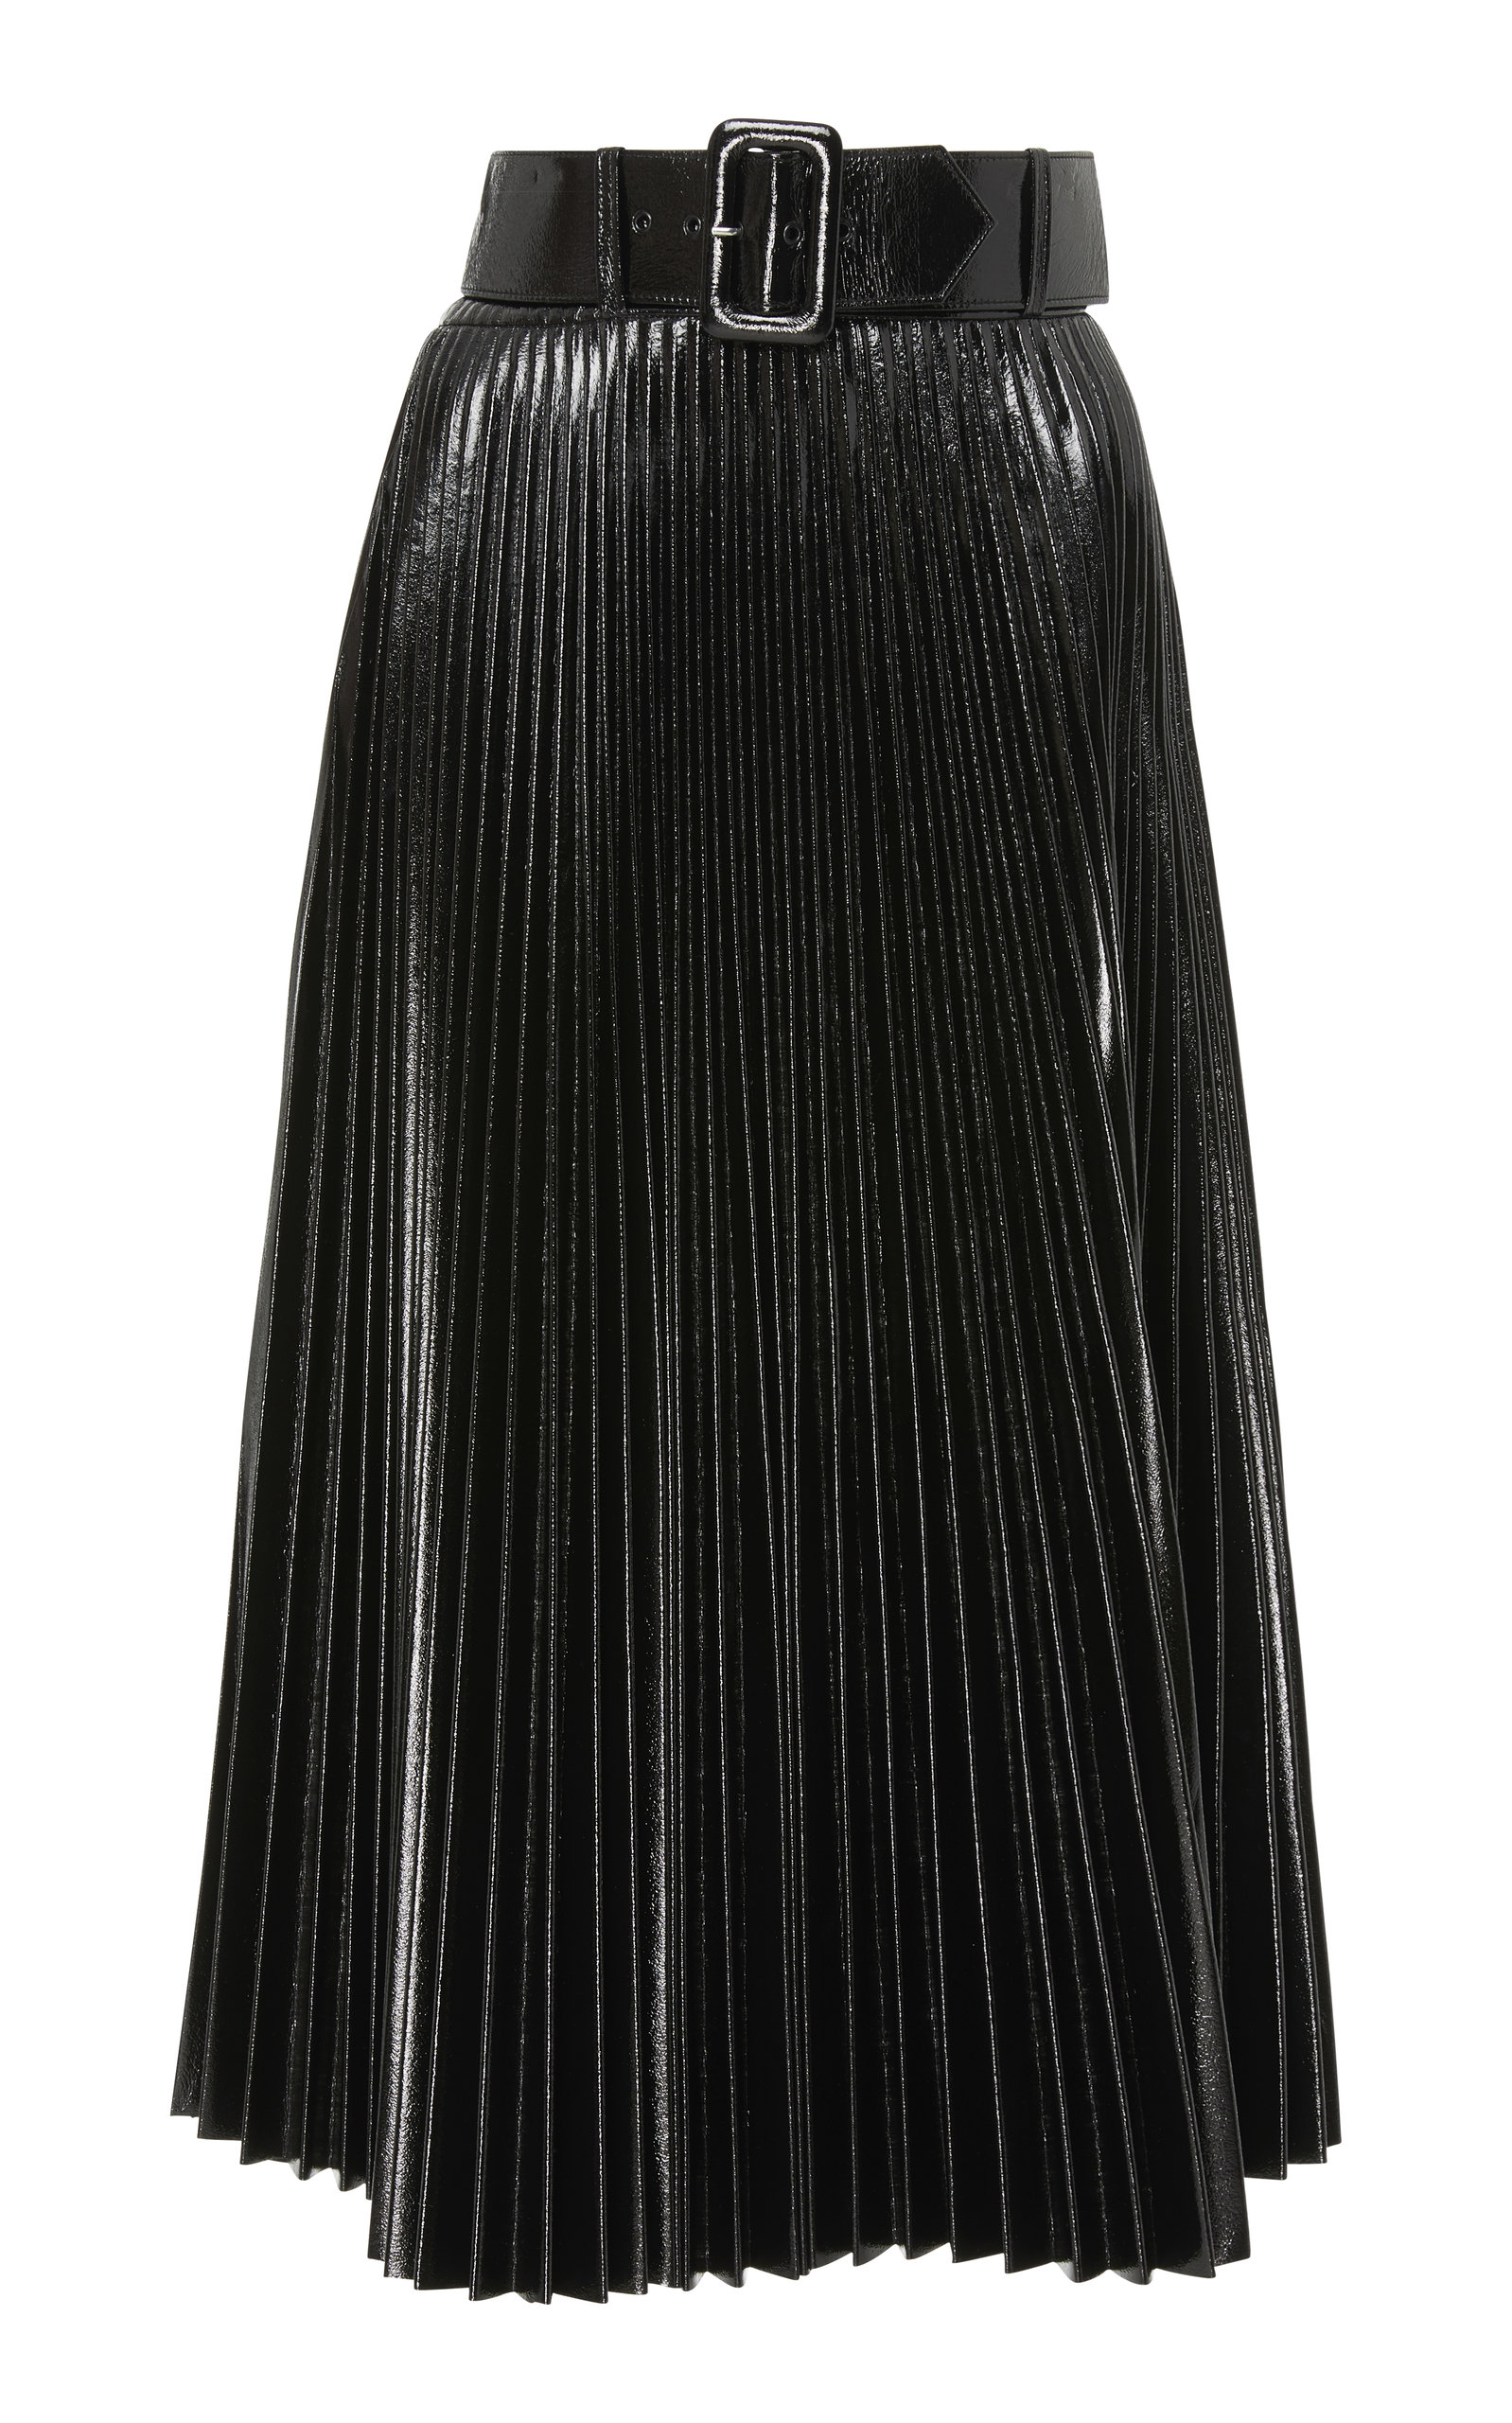 DELFI COLLECTIVE QUINCY PVC SKIRT